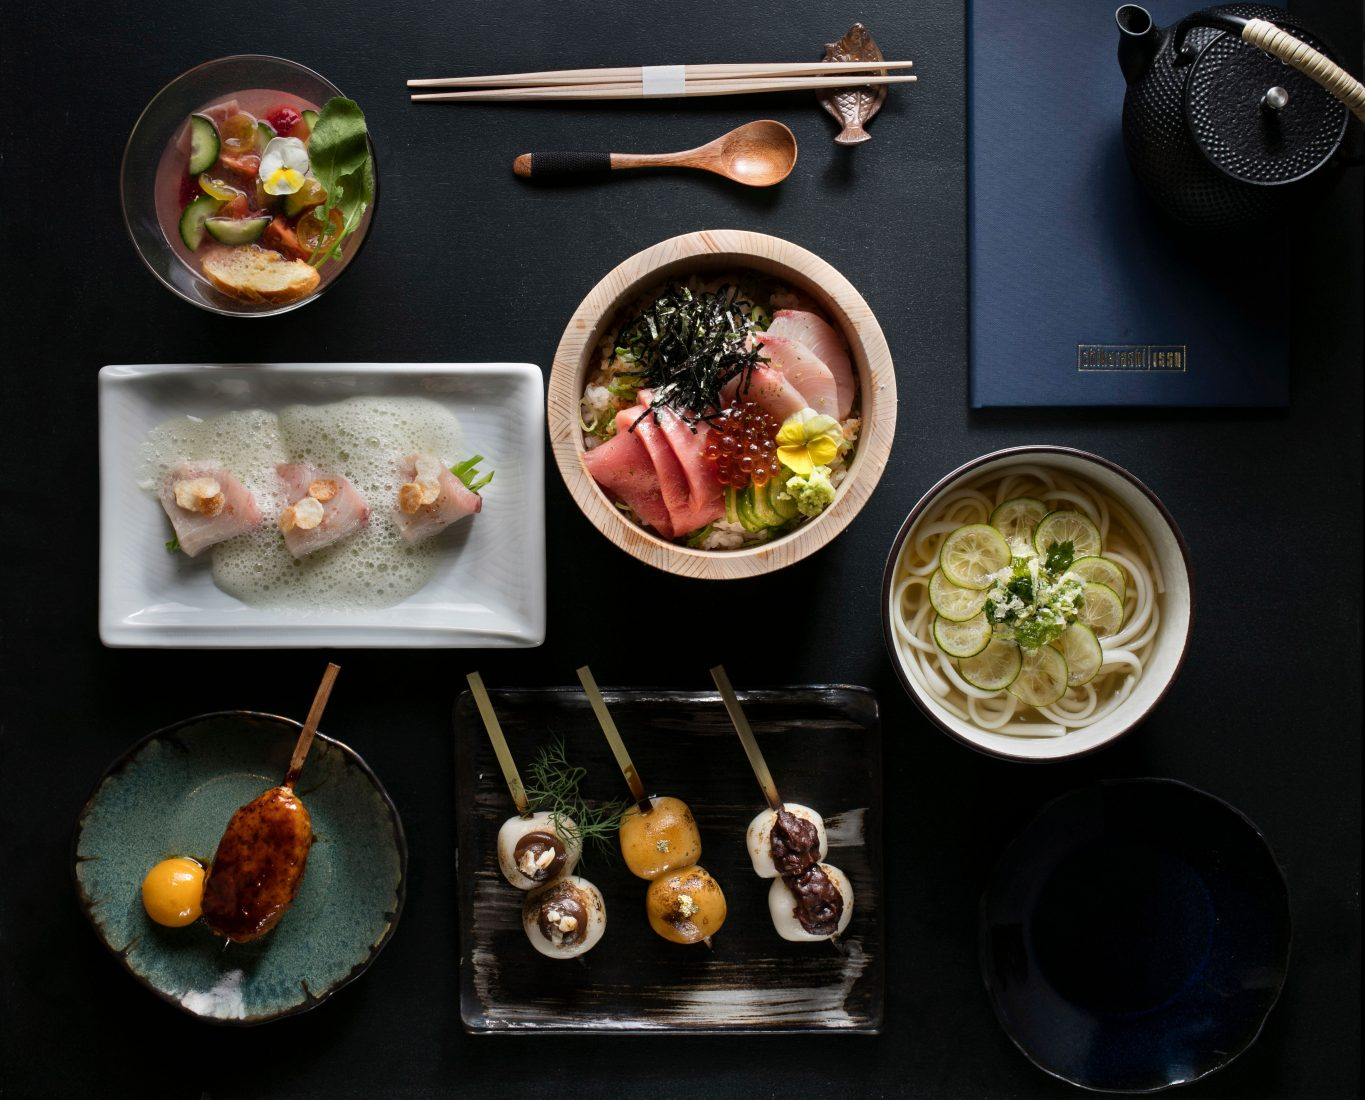 Chikarashi Isso offers a Japanese Kappo-style Meal in FiDi